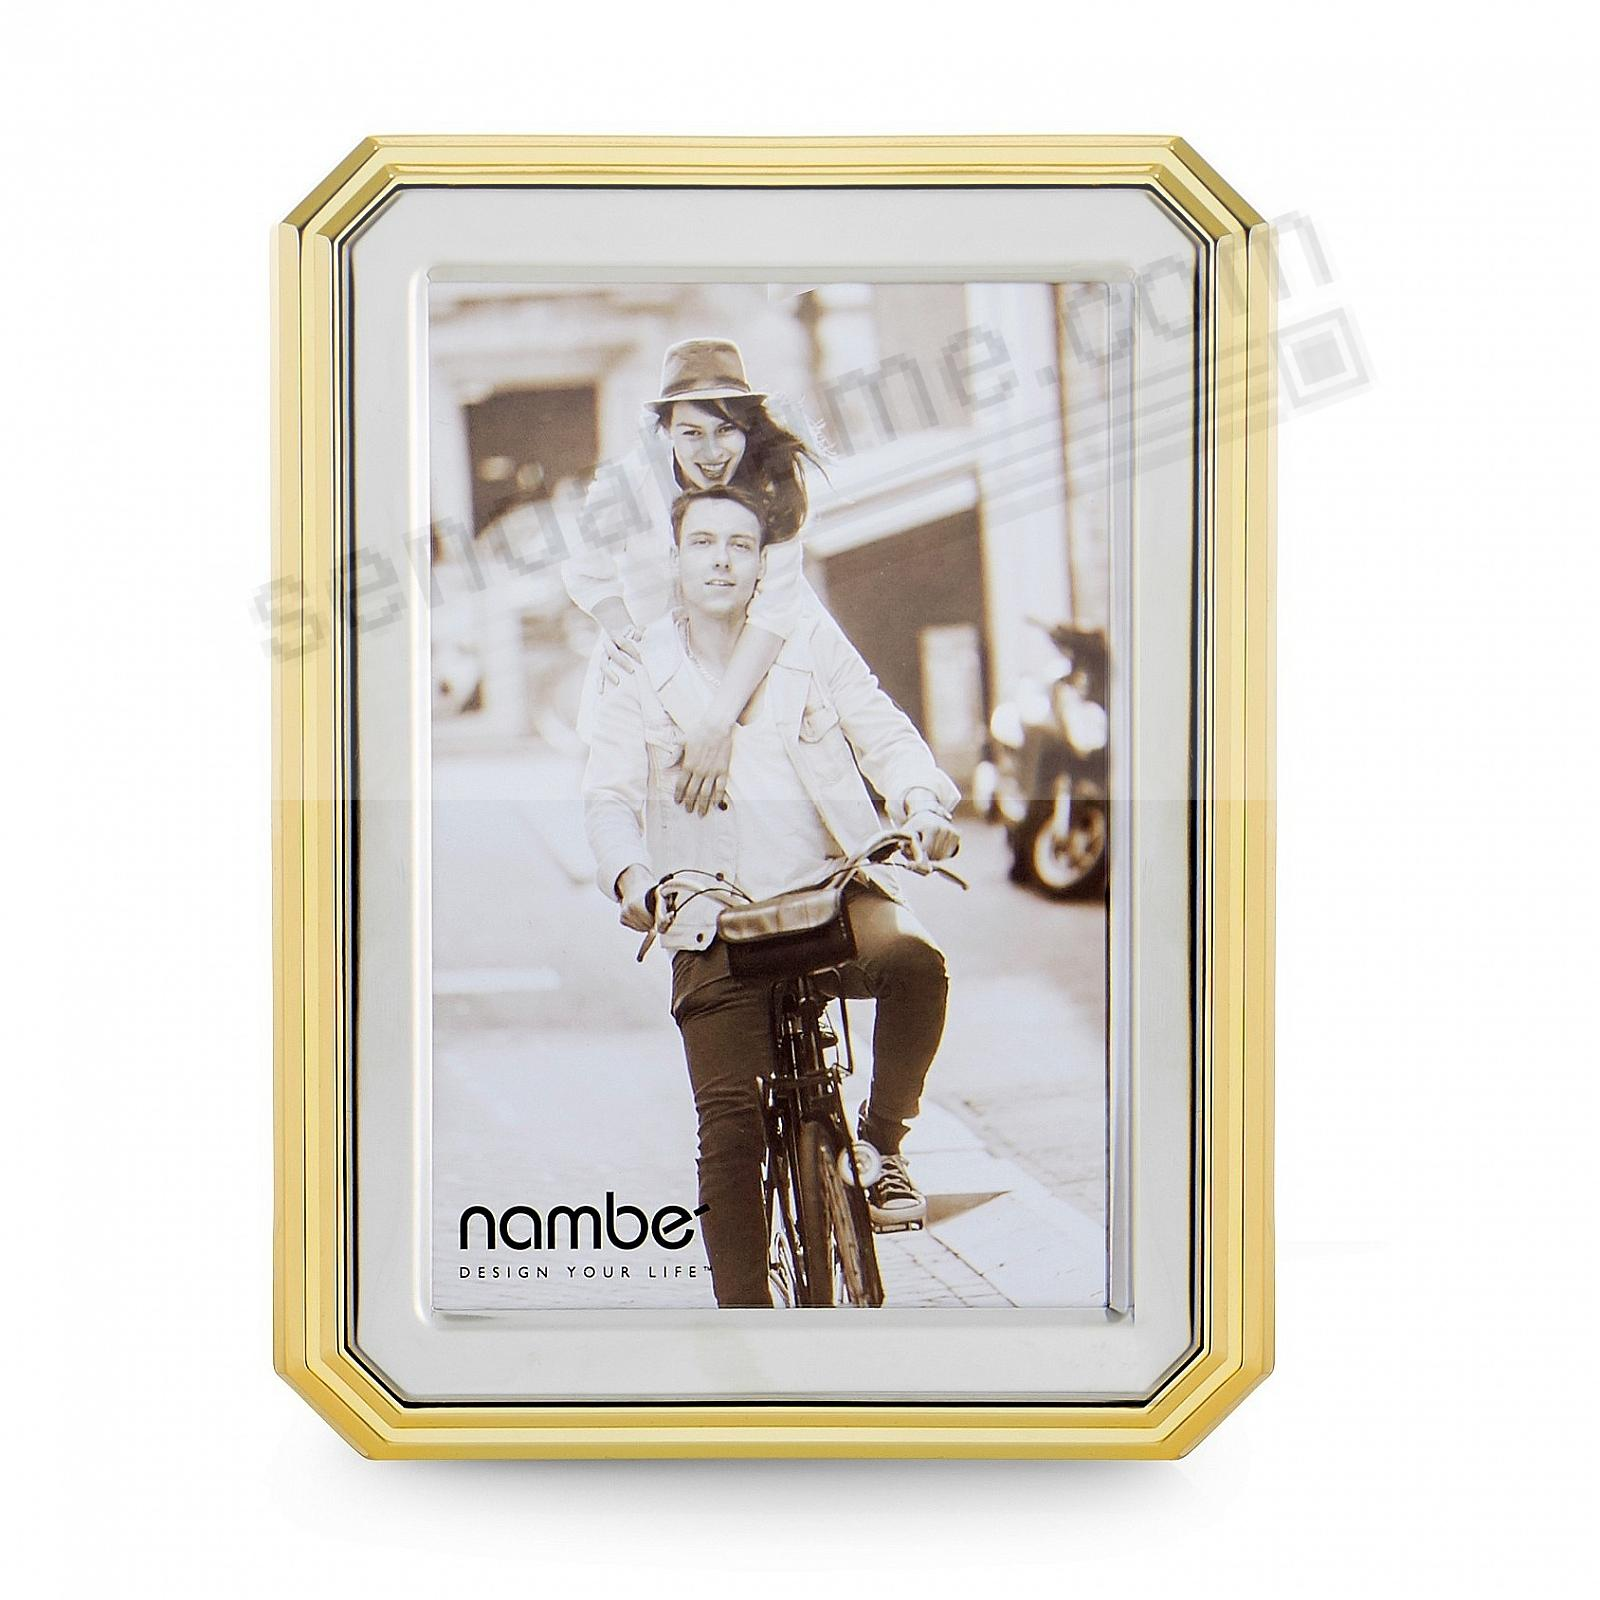 The GLEASON 5x7 frame by Nambe